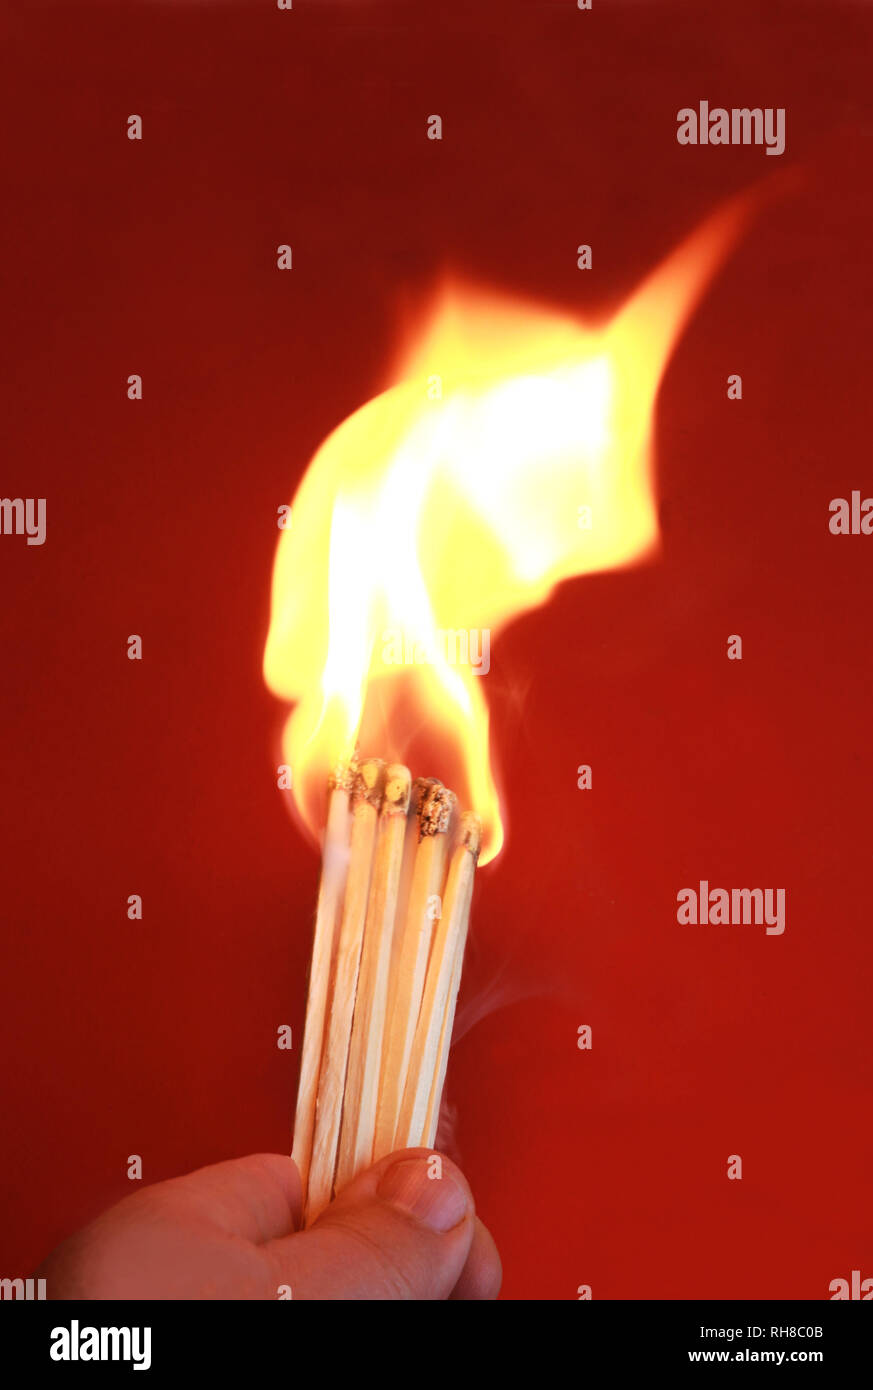 playing with fire, hand holding large matchsticks just inflamed, high flame - Stock Image